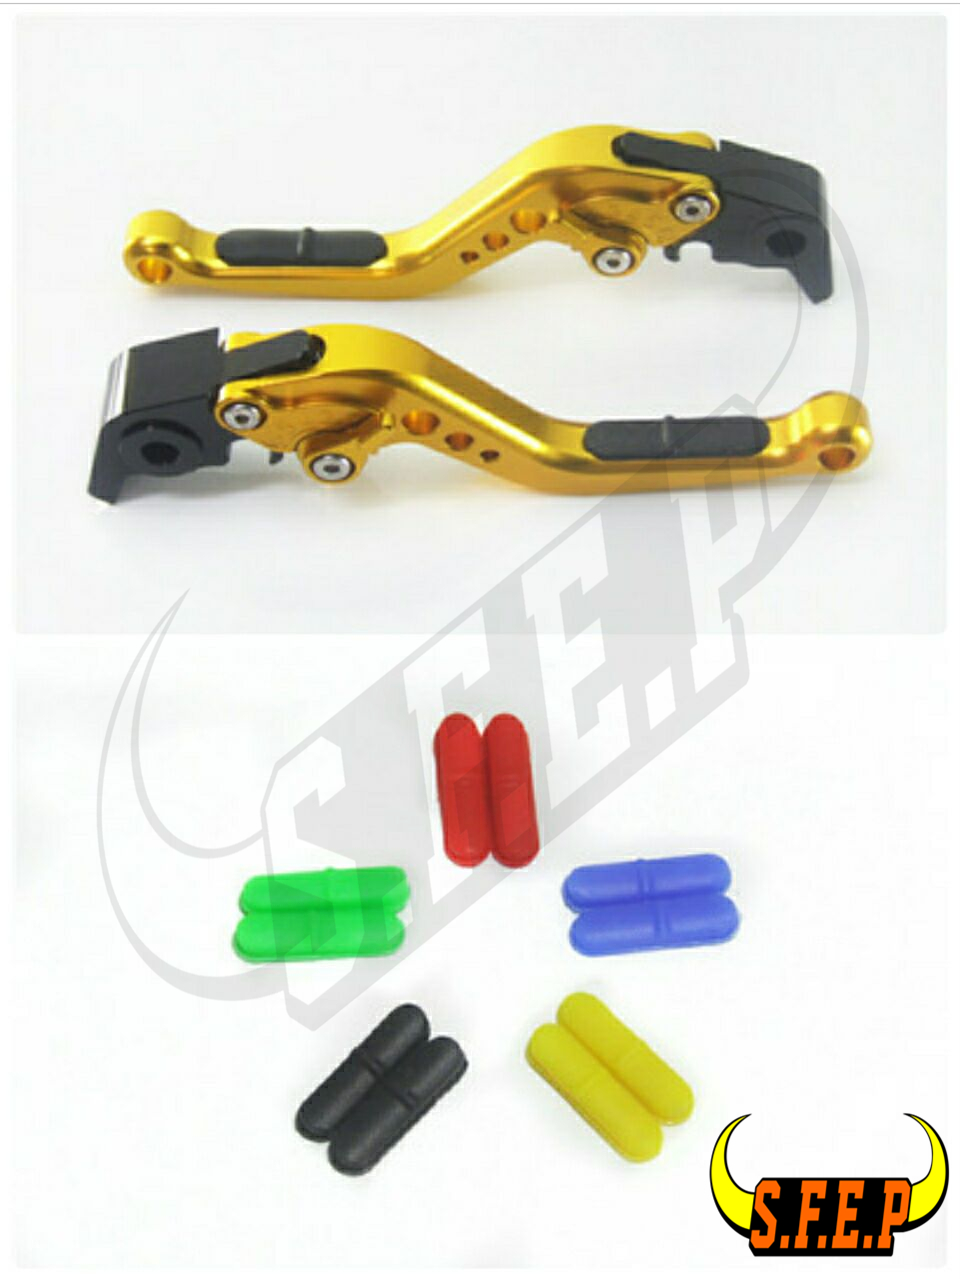 CNC Adjustable Motorcycle Brake and Clutch Levers with Anti-Slip For Kawasaki VULCAN/S 650cc 2015-2018